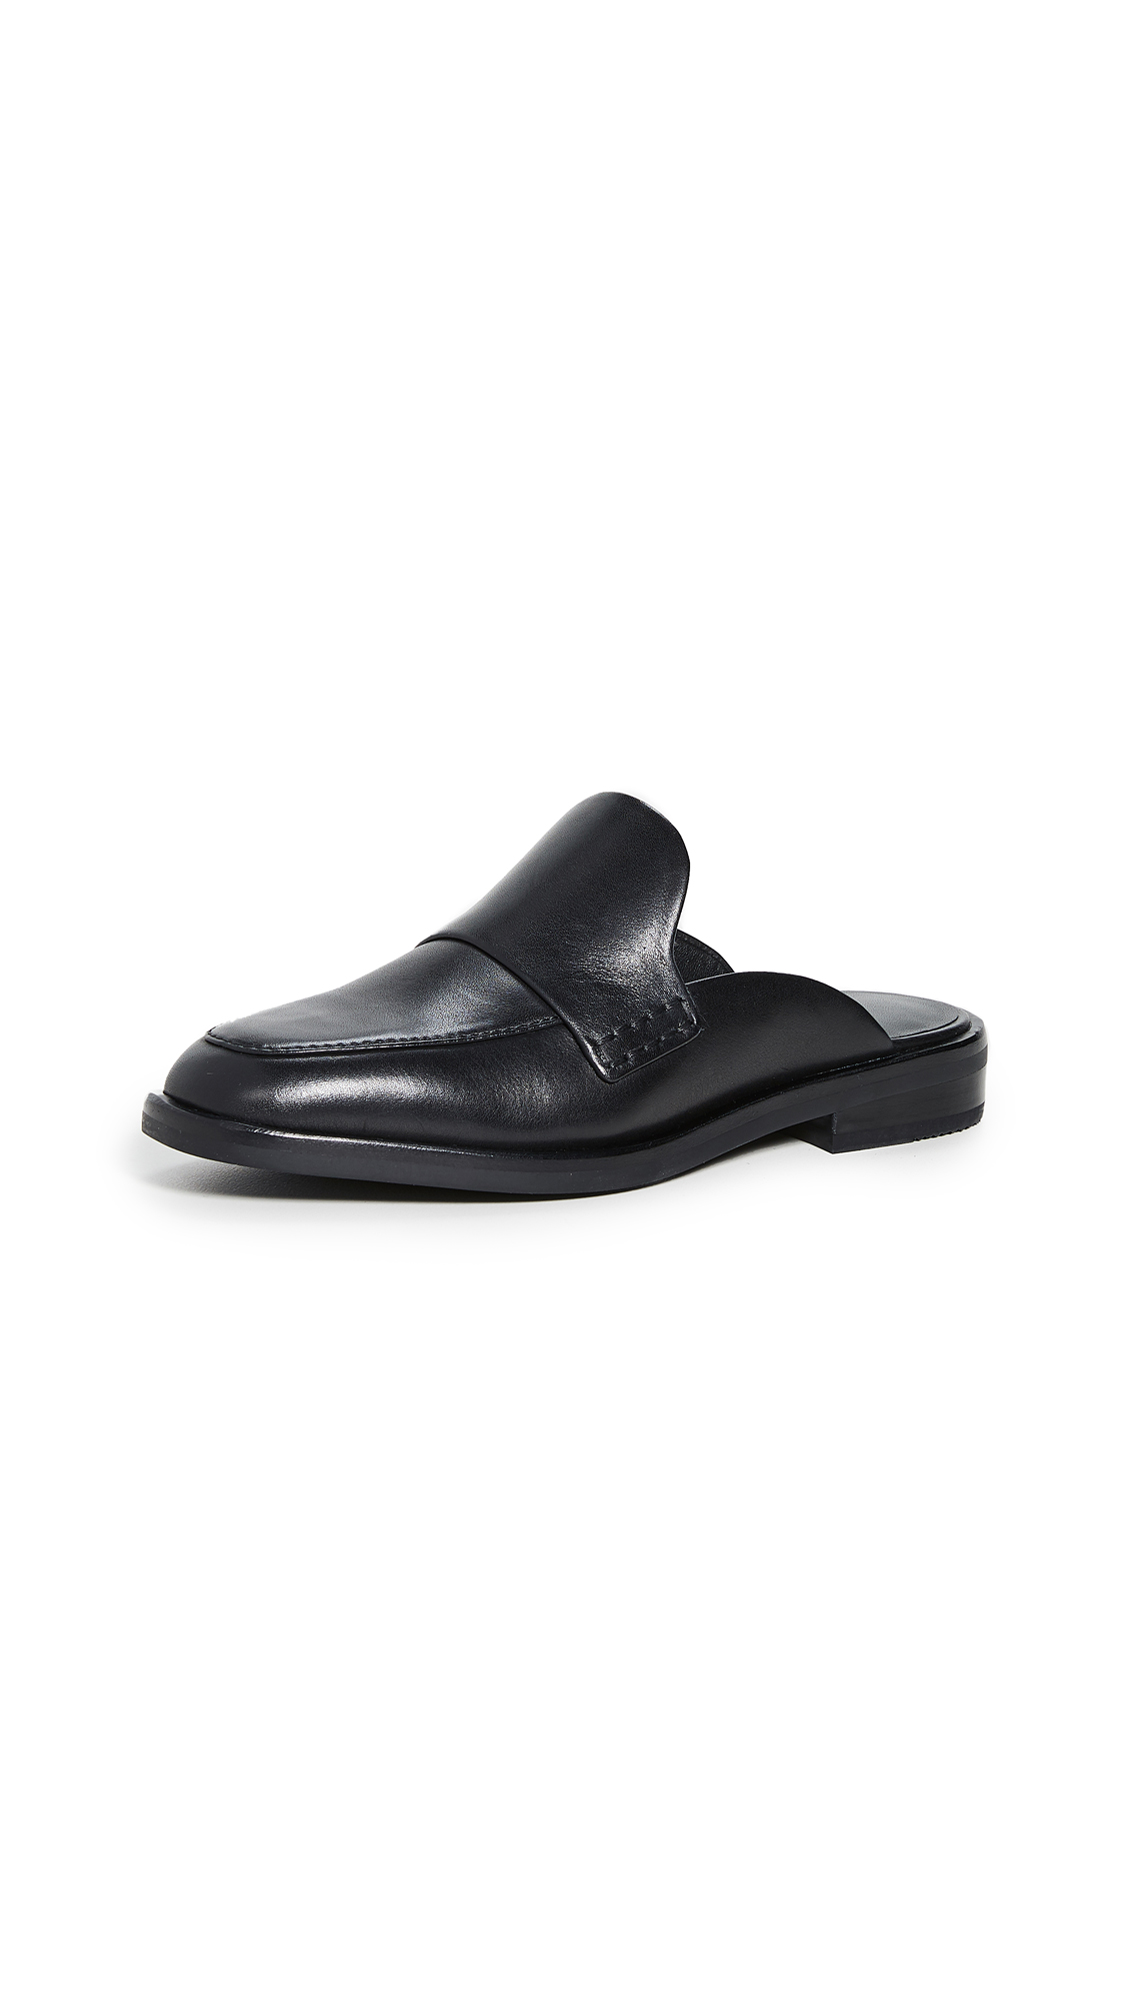 Buy 3.1 Phillip Lim Alexa 25mm Loafer Mules online, shop 3.1 Phillip Lim